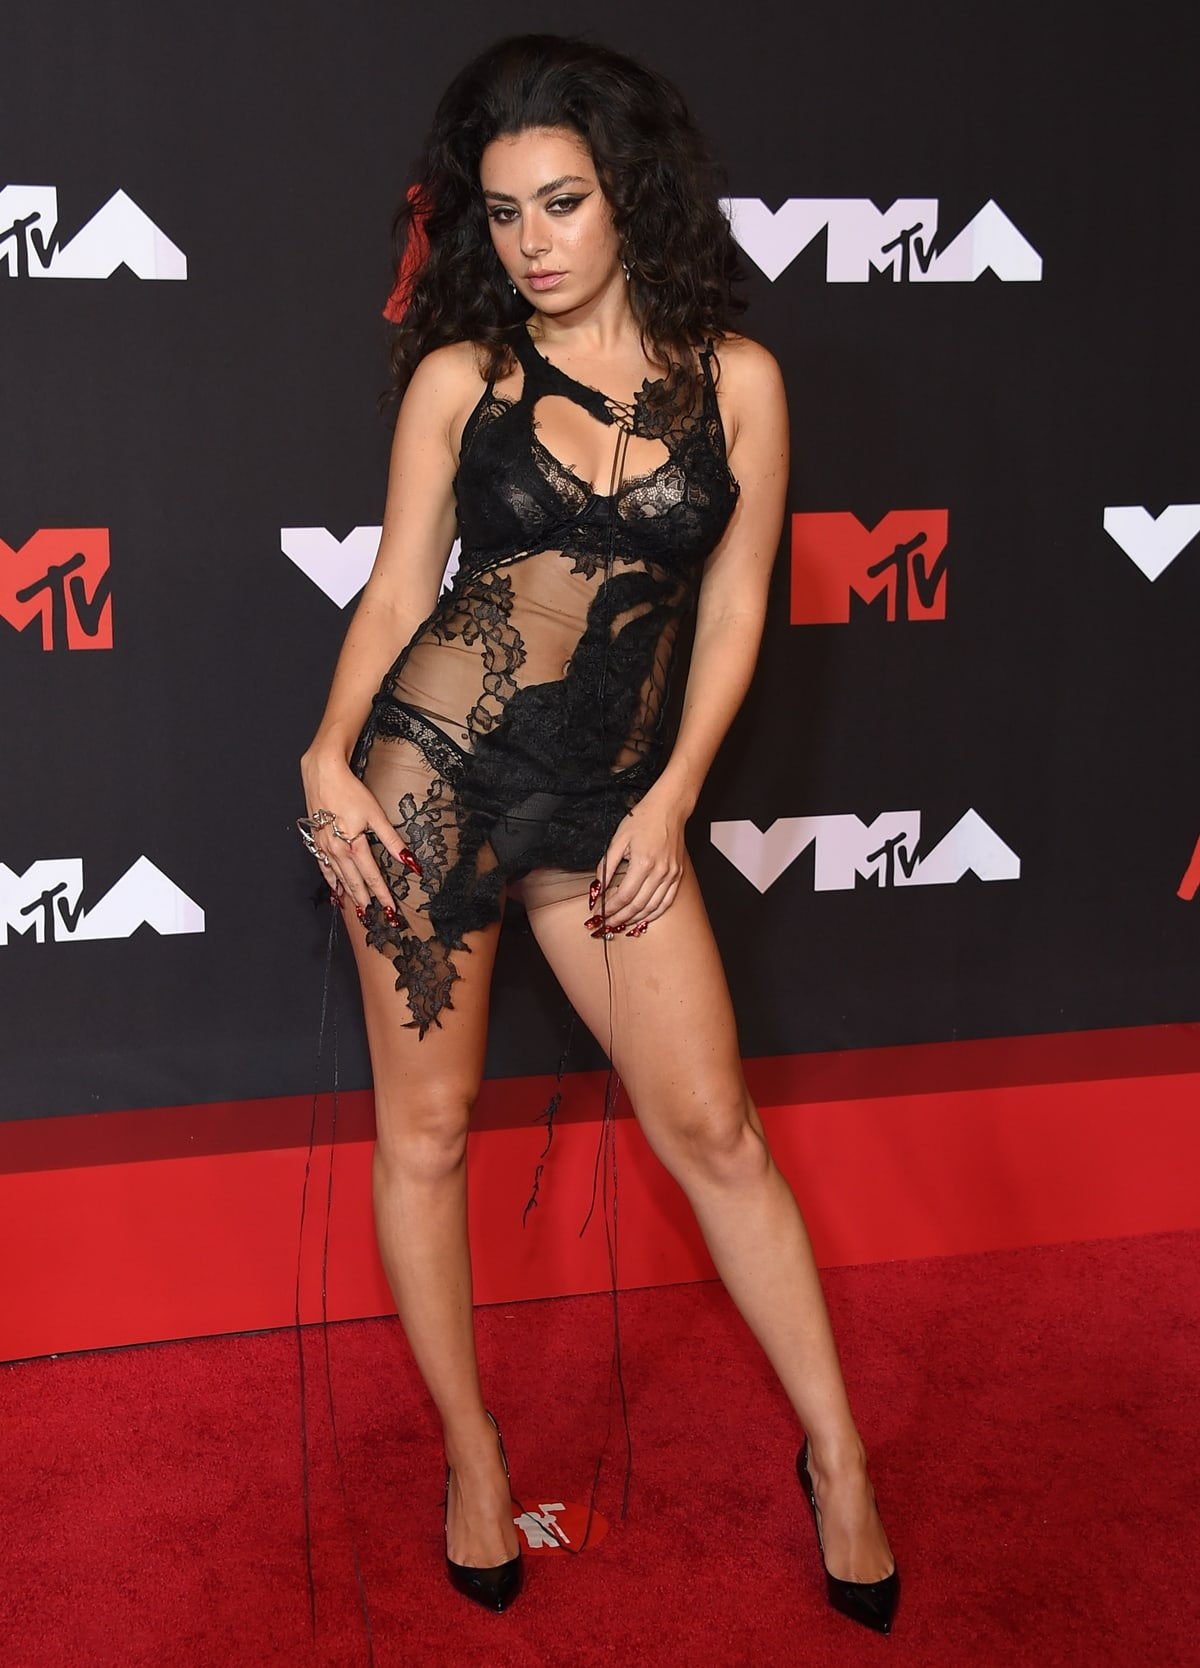 Charli XCX in a lacy black mini dress at the 2021 MTV Video Music Awards